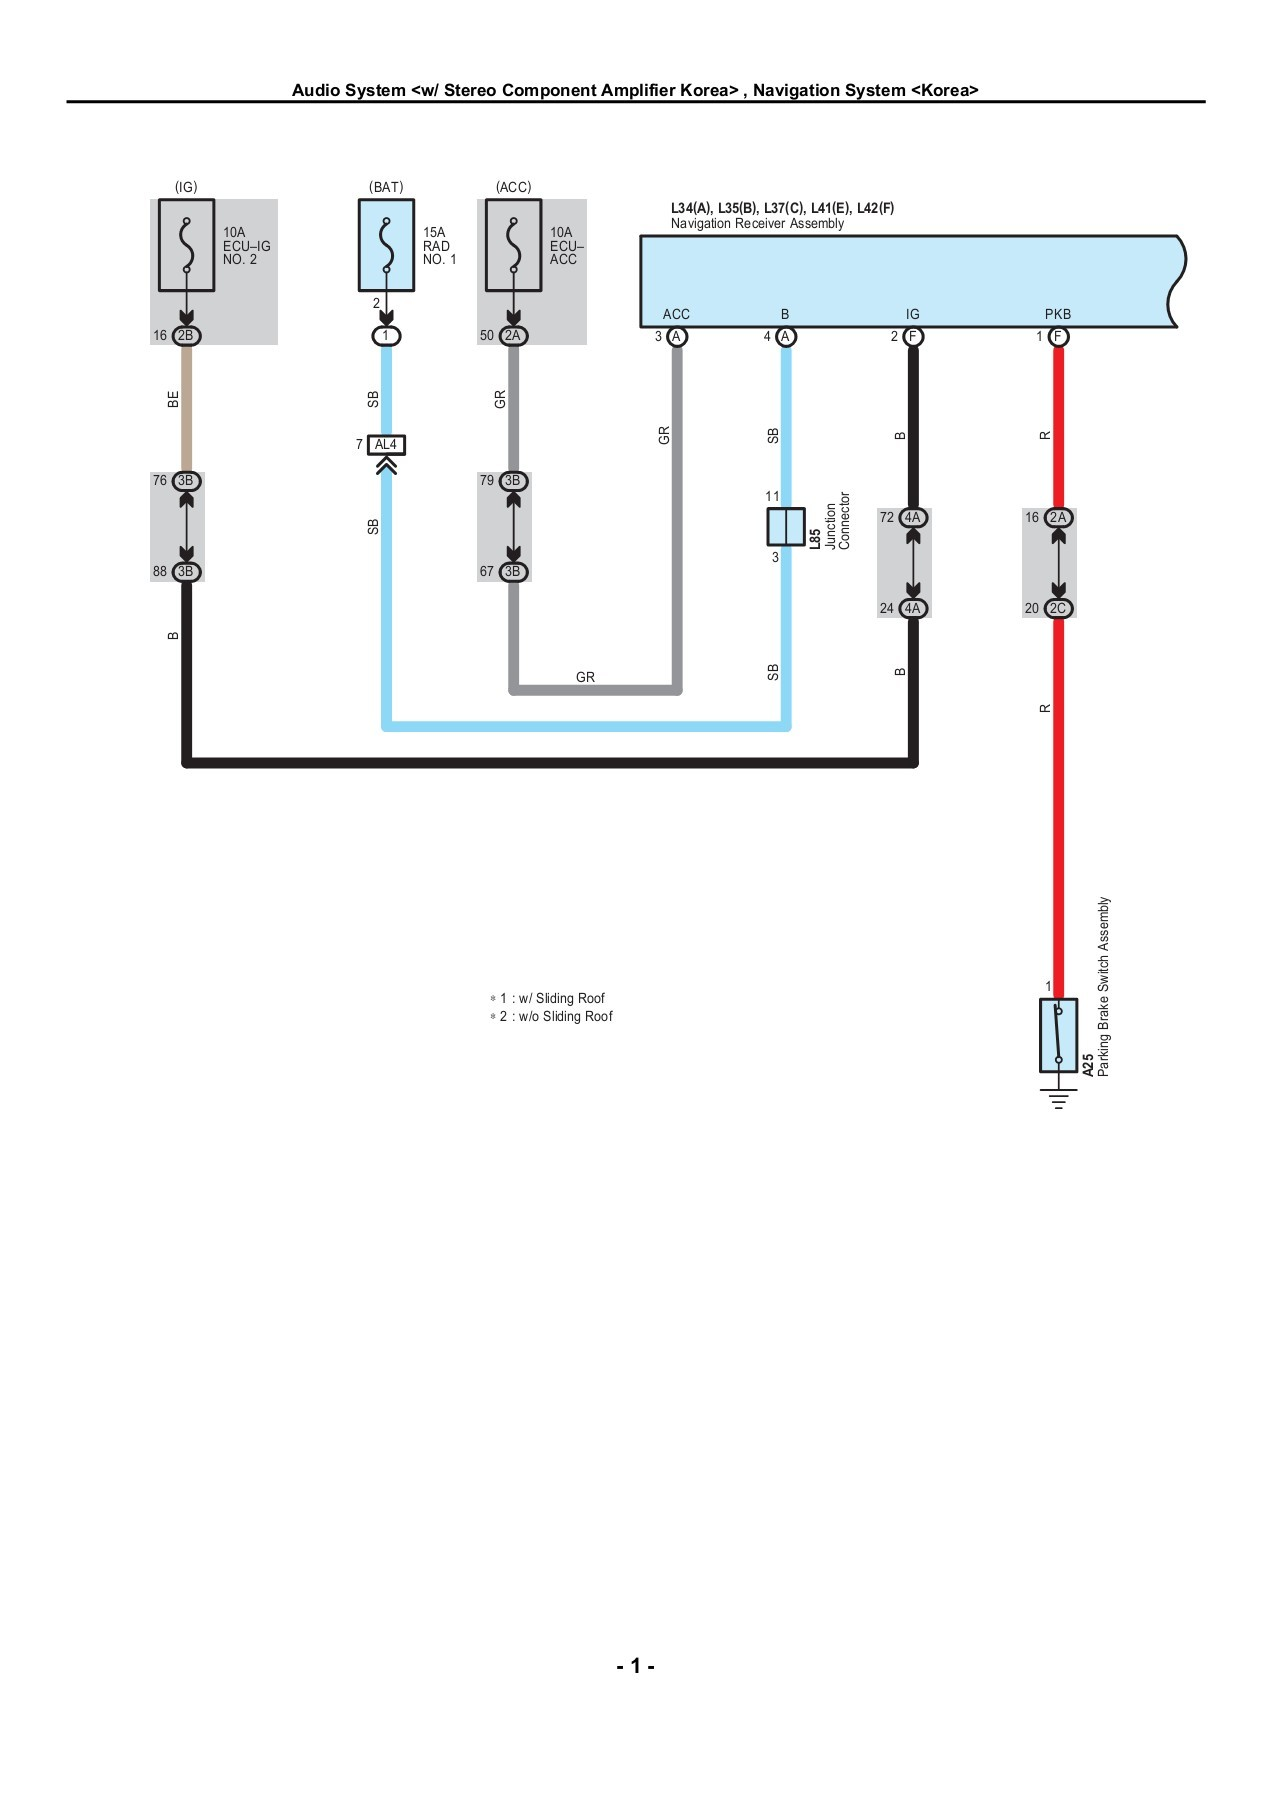 toyota prius 2010 electrical wiring diagrams pages 51 100 text version fliphtml5 [ 1272 x 1800 Pixel ]